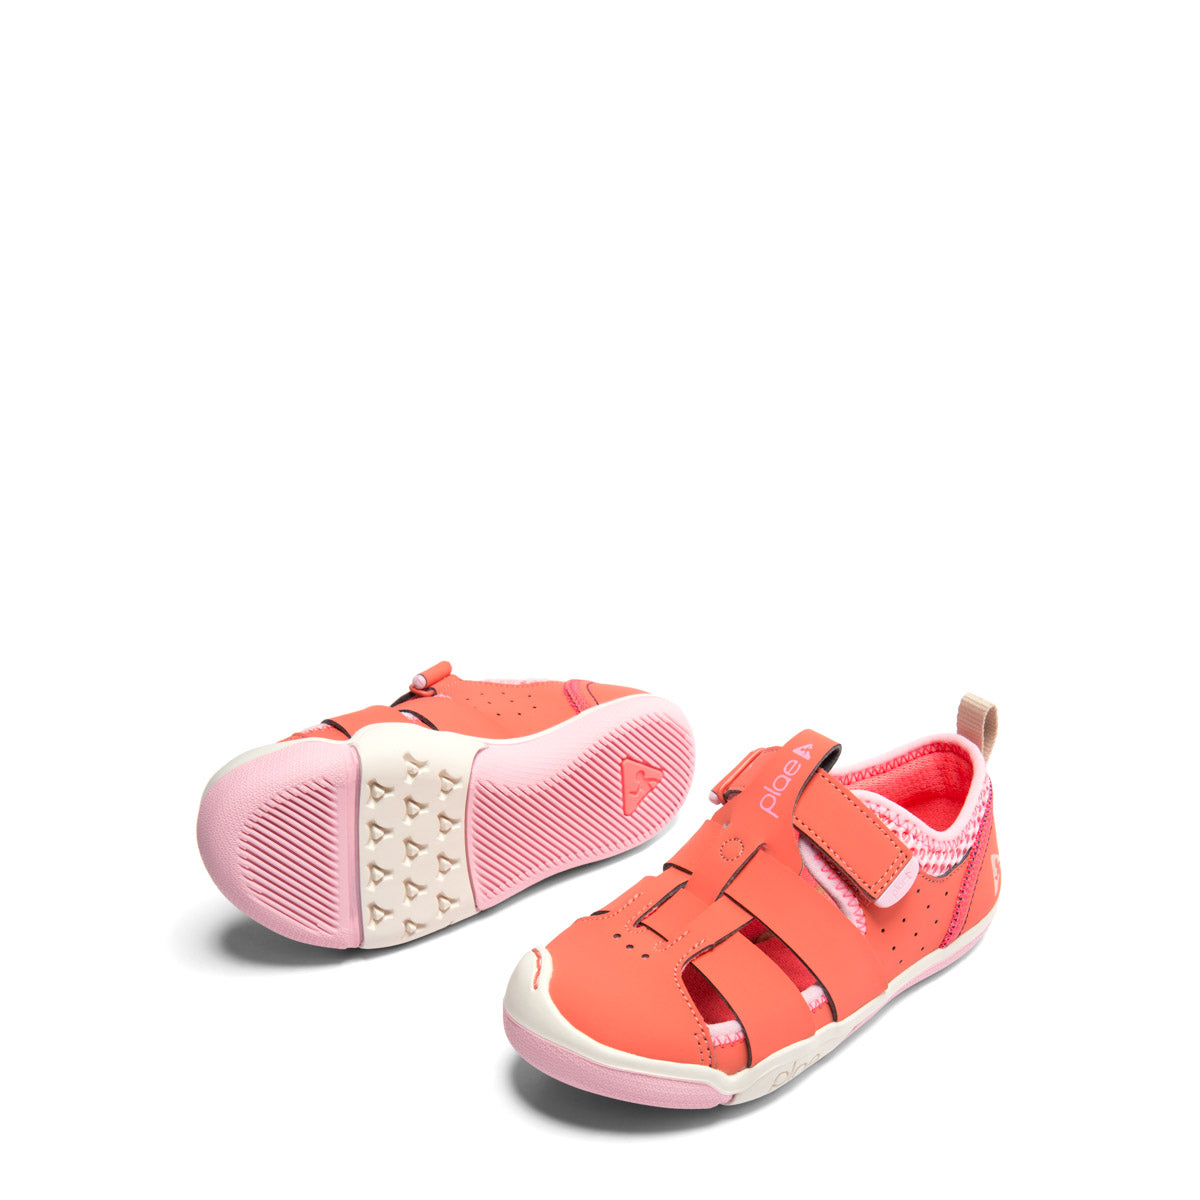 Plae Sam Sandal in Coralin (Sizes 6-13.5)